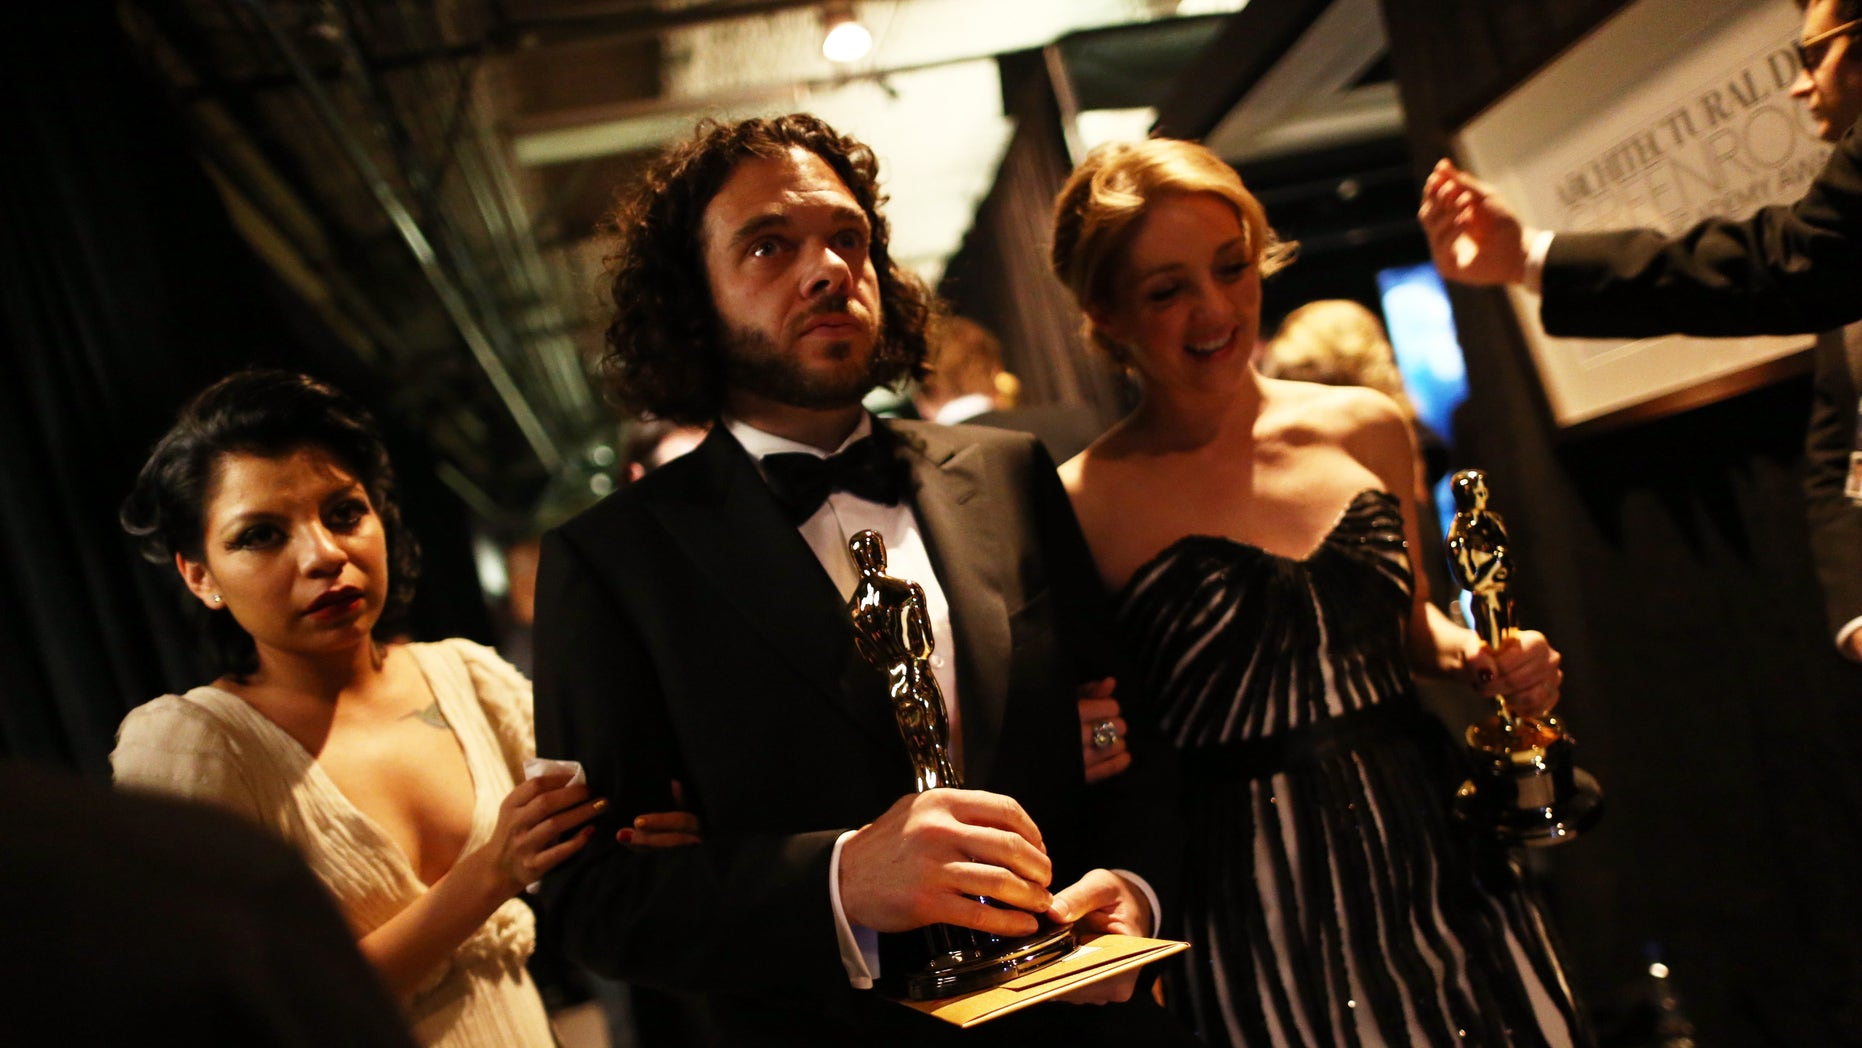 HOLLYWOOD, CA - FEBRUARY 24:  (L-R) Artist Inocente Izucar, filmmakers Sean Fine and Andrea Nix Fine, winners of the Best Documentary Short Subject award for 'Inocente,' backstage during the Oscars held at the Dolby Theatre on February 24, 2013 in Hollywood, California.  (Photo by Christopher Polk/Getty Images)